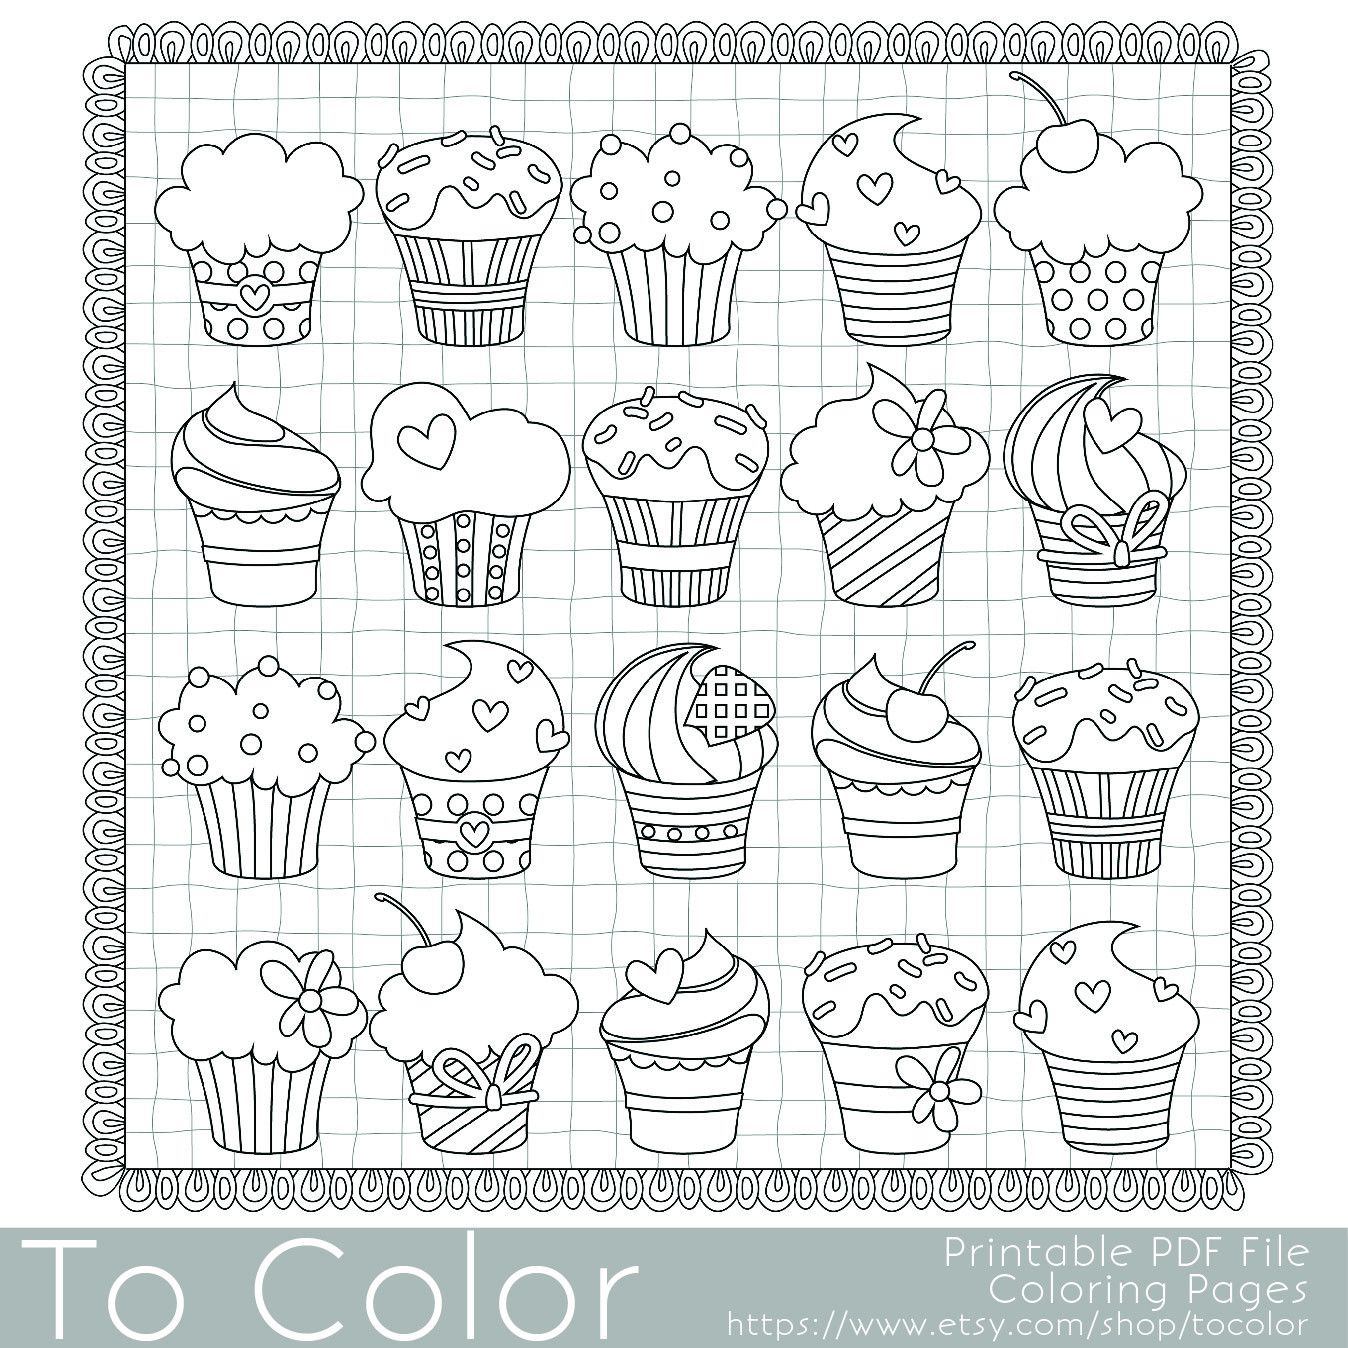 Cupcakes Coloring Page this is a printable PDF coloring